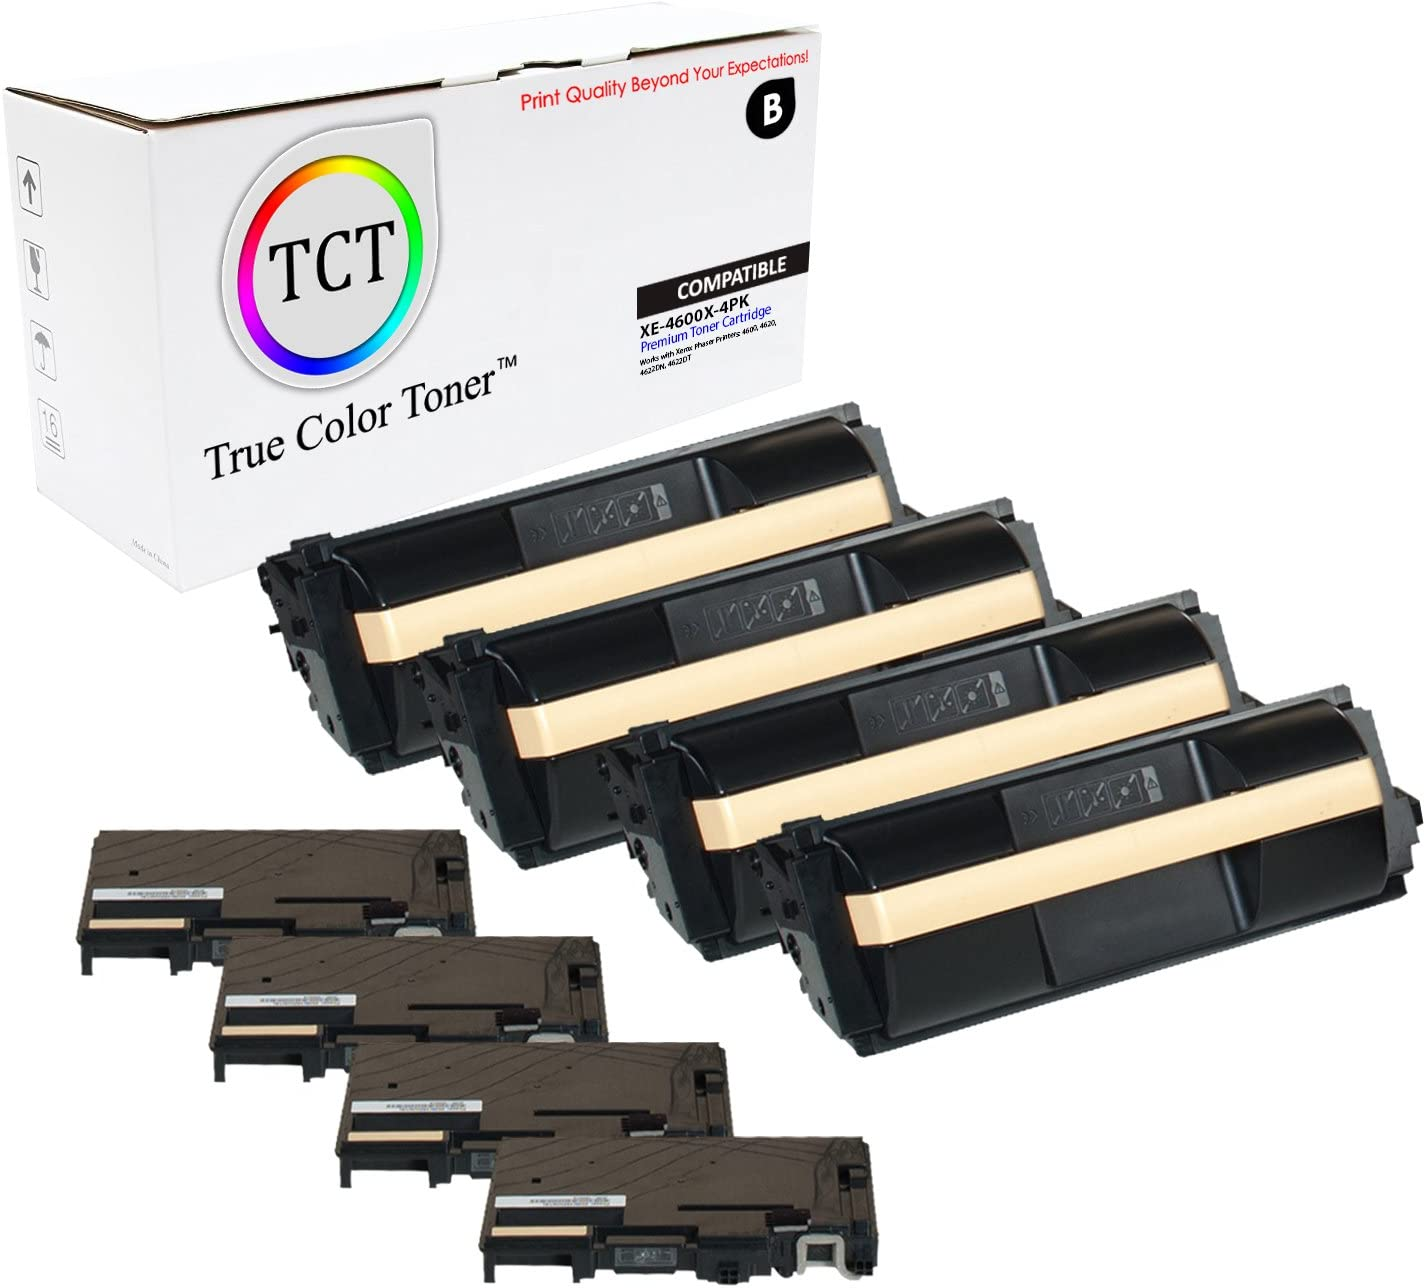 4 Pack TCT Premium Compatible Toner Cartridge Replacement for Xerox 106R01535 Black Extra High Yield Works with Xerox Phaser 4600 4600N 4600DN 4600DT Printers 30,000 Pages